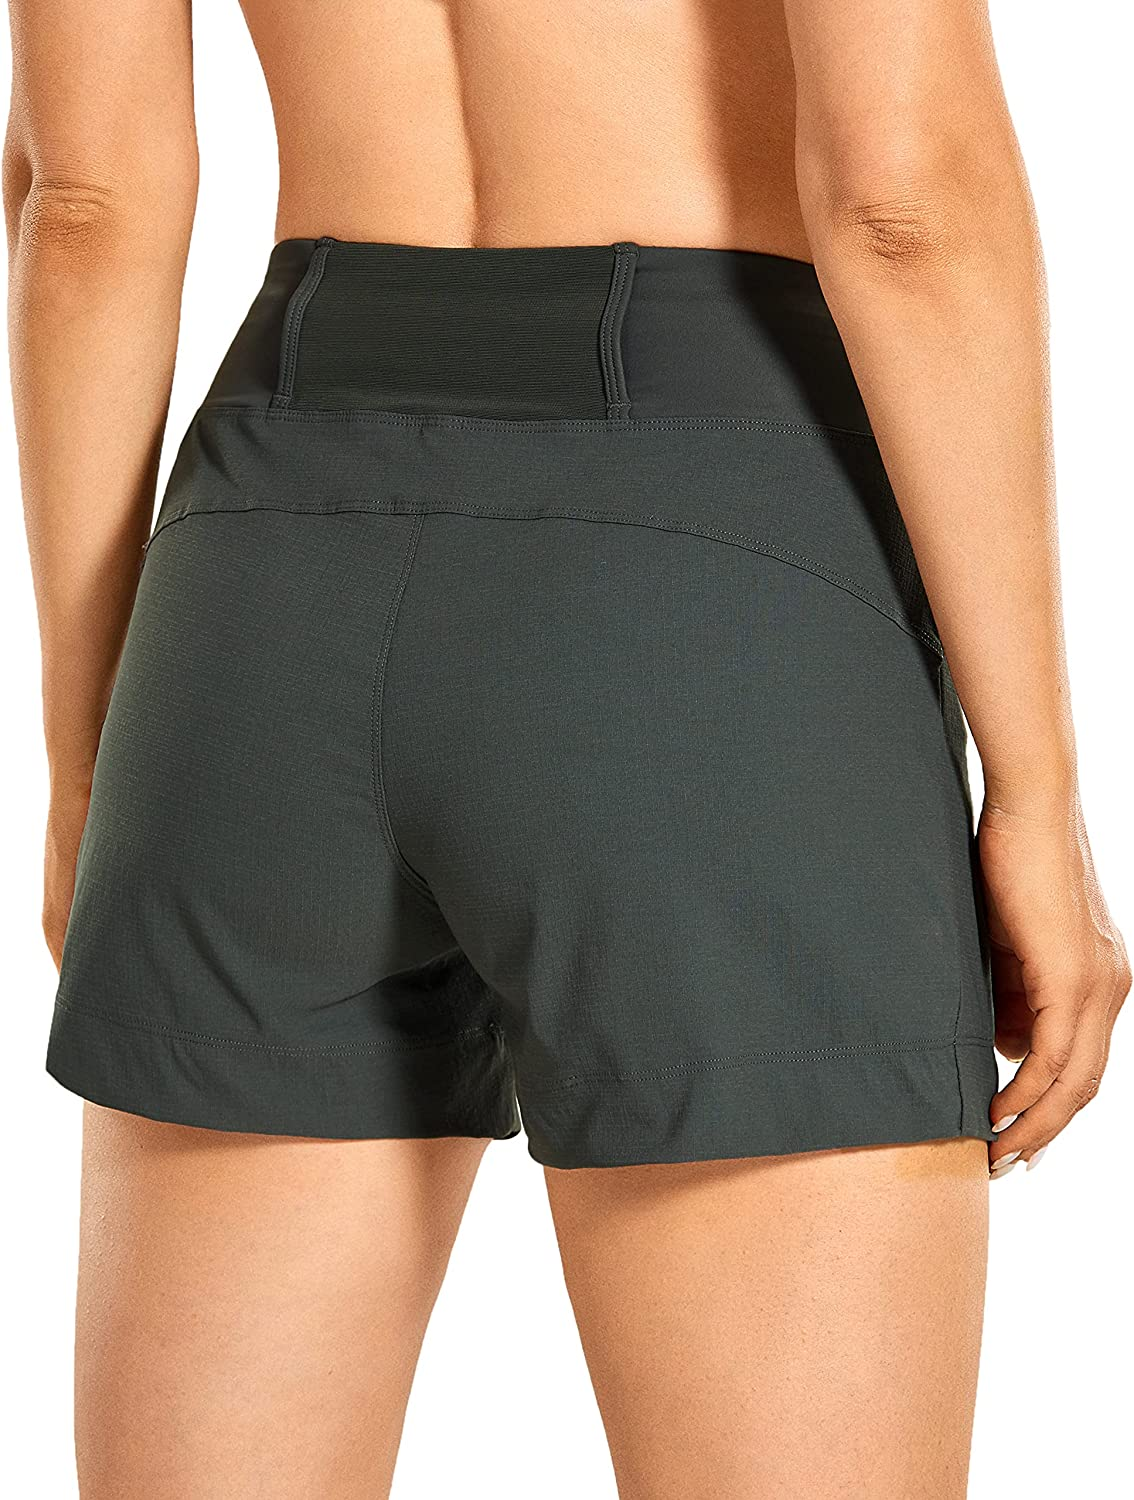 CRZ YOGA Women's Lightweight Hiking Travel Max 71% OFF Sale SALE% OFF Outdoor Quick- Shorts